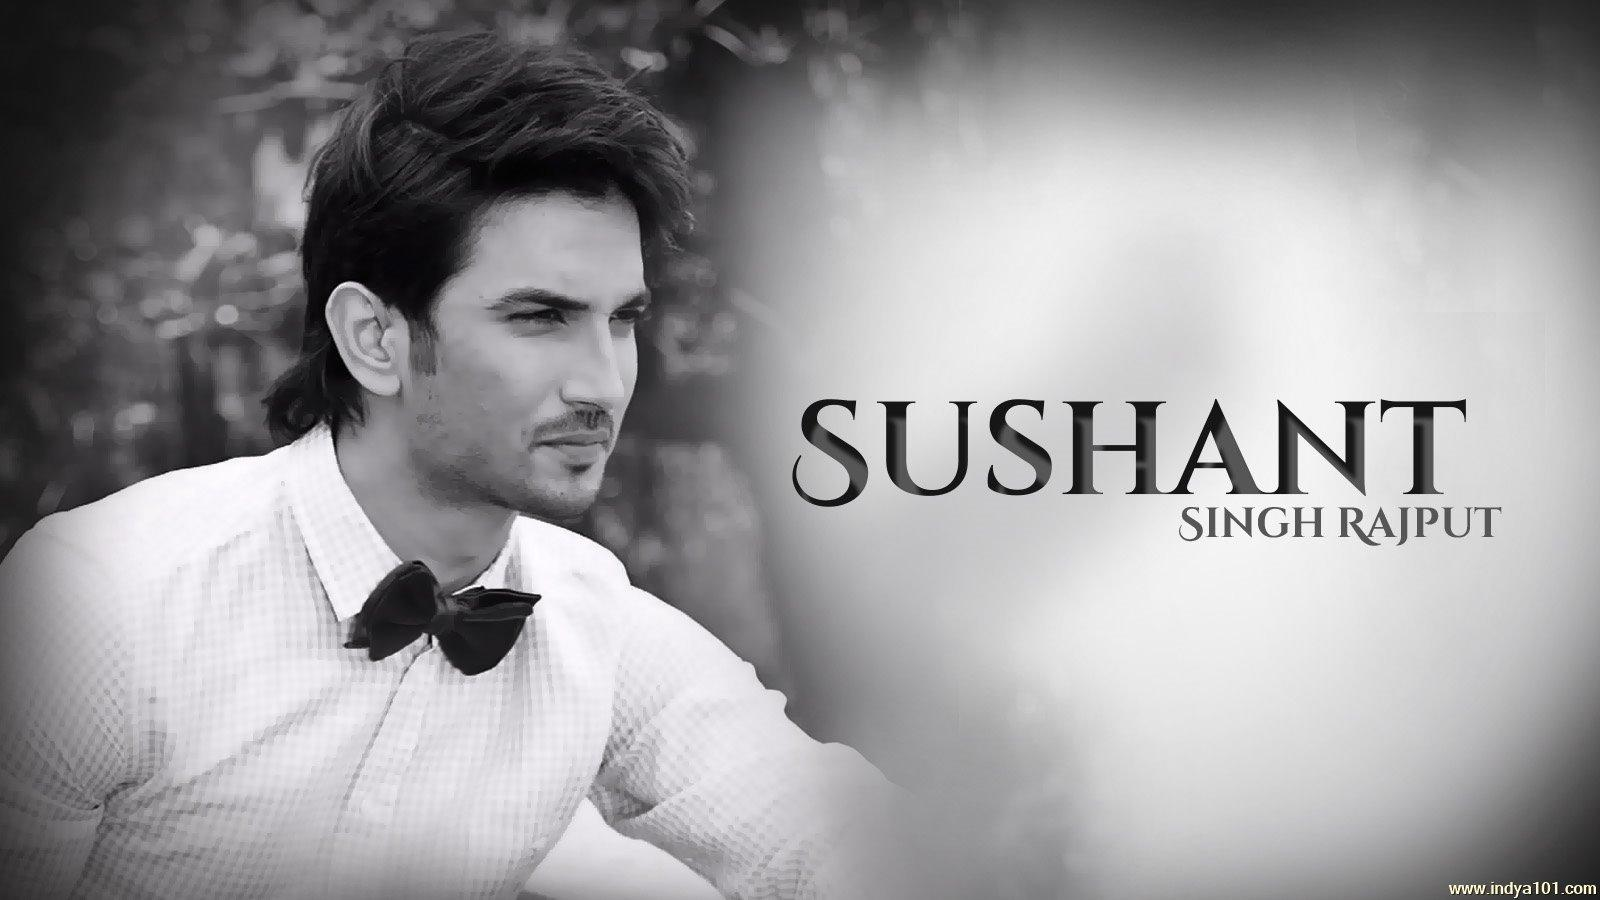 25 Sushant Singh Rajput Image, Photos, Pics & Hd Wallpapers